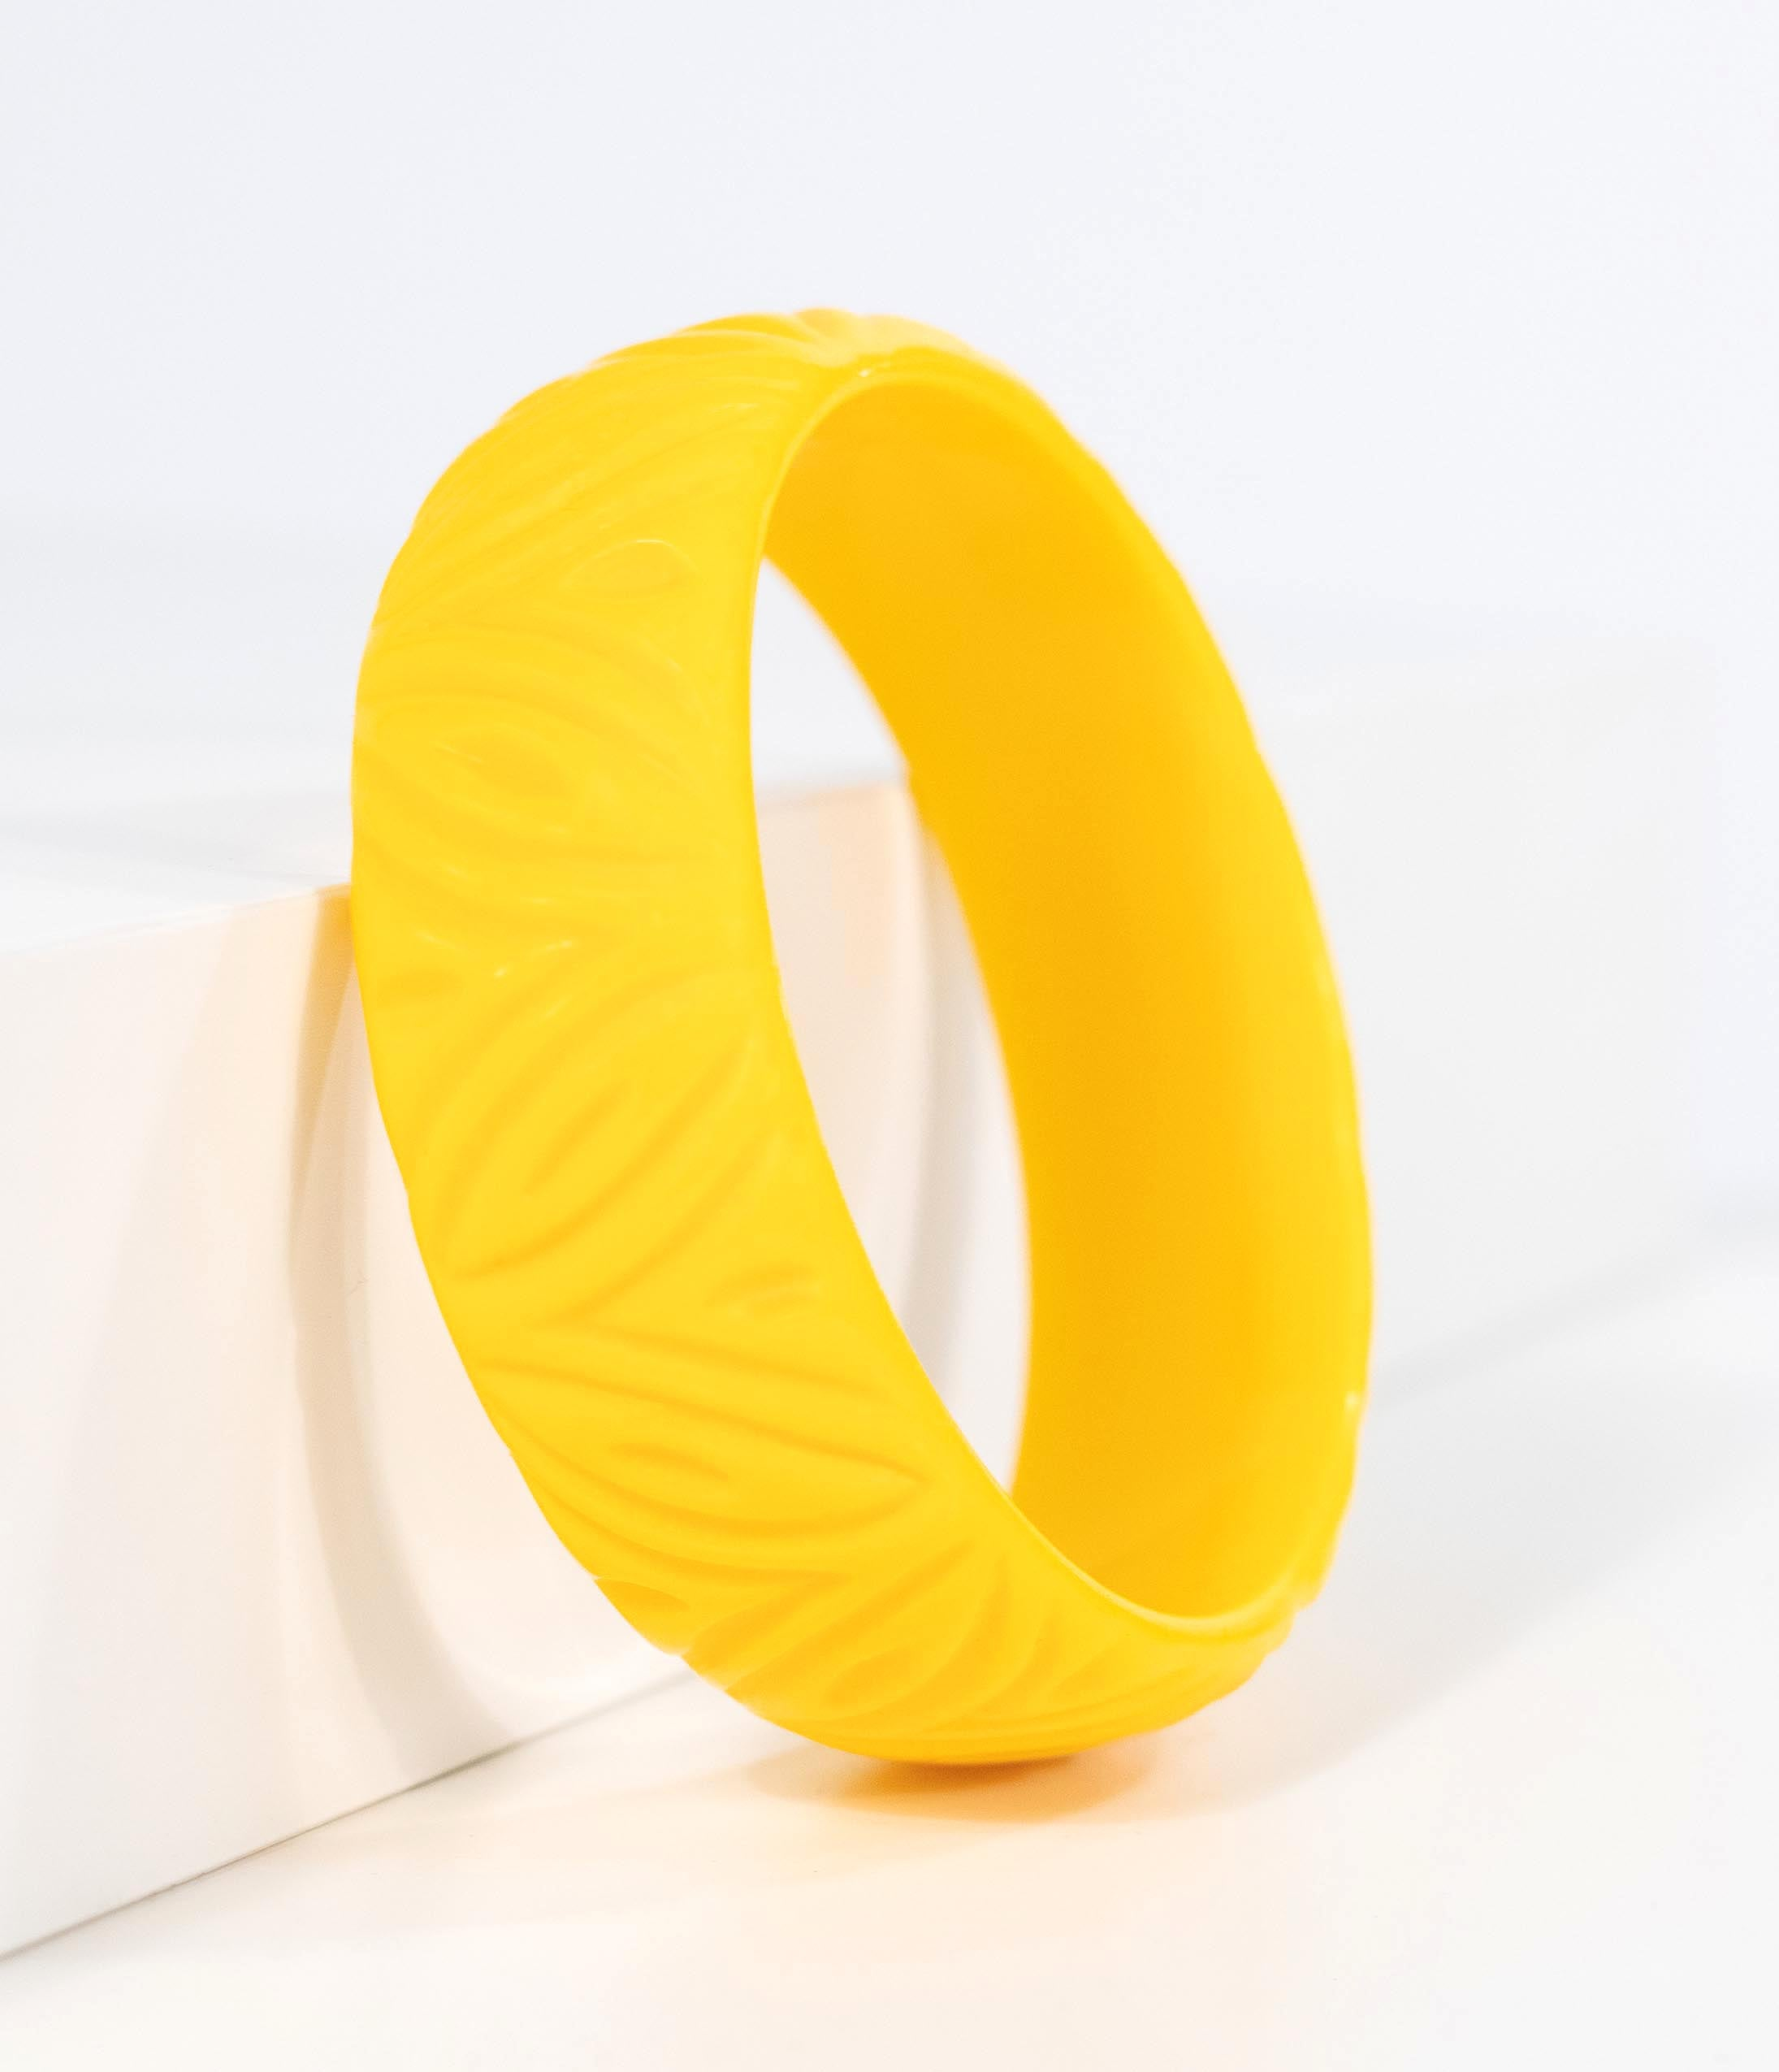 1950s Jewelry Styles and History Banana Yellow Carved Resin Bangle Bracelet $17.00 AT vintagedancer.com